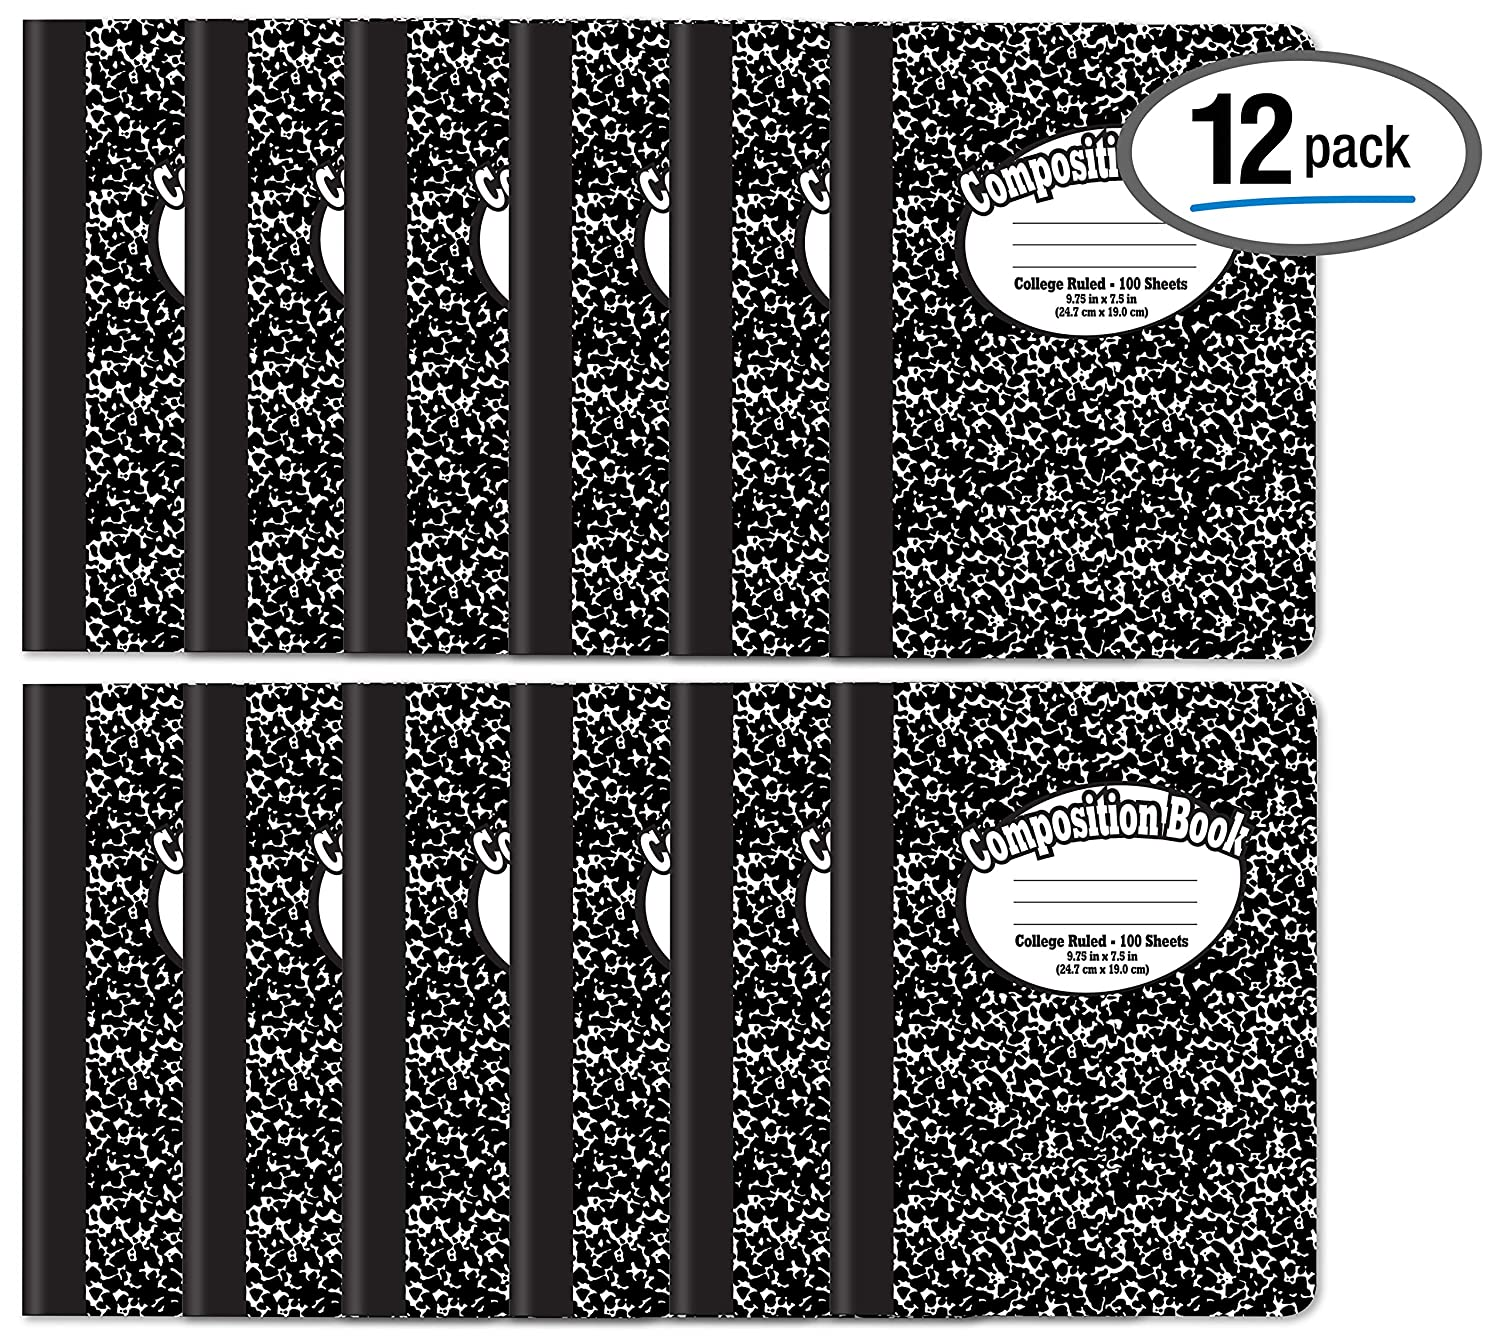 Comp Book Black Marble 12 Pack 72938 Notebooks 100 Sheets College Ruled Paper Mead Composition Books